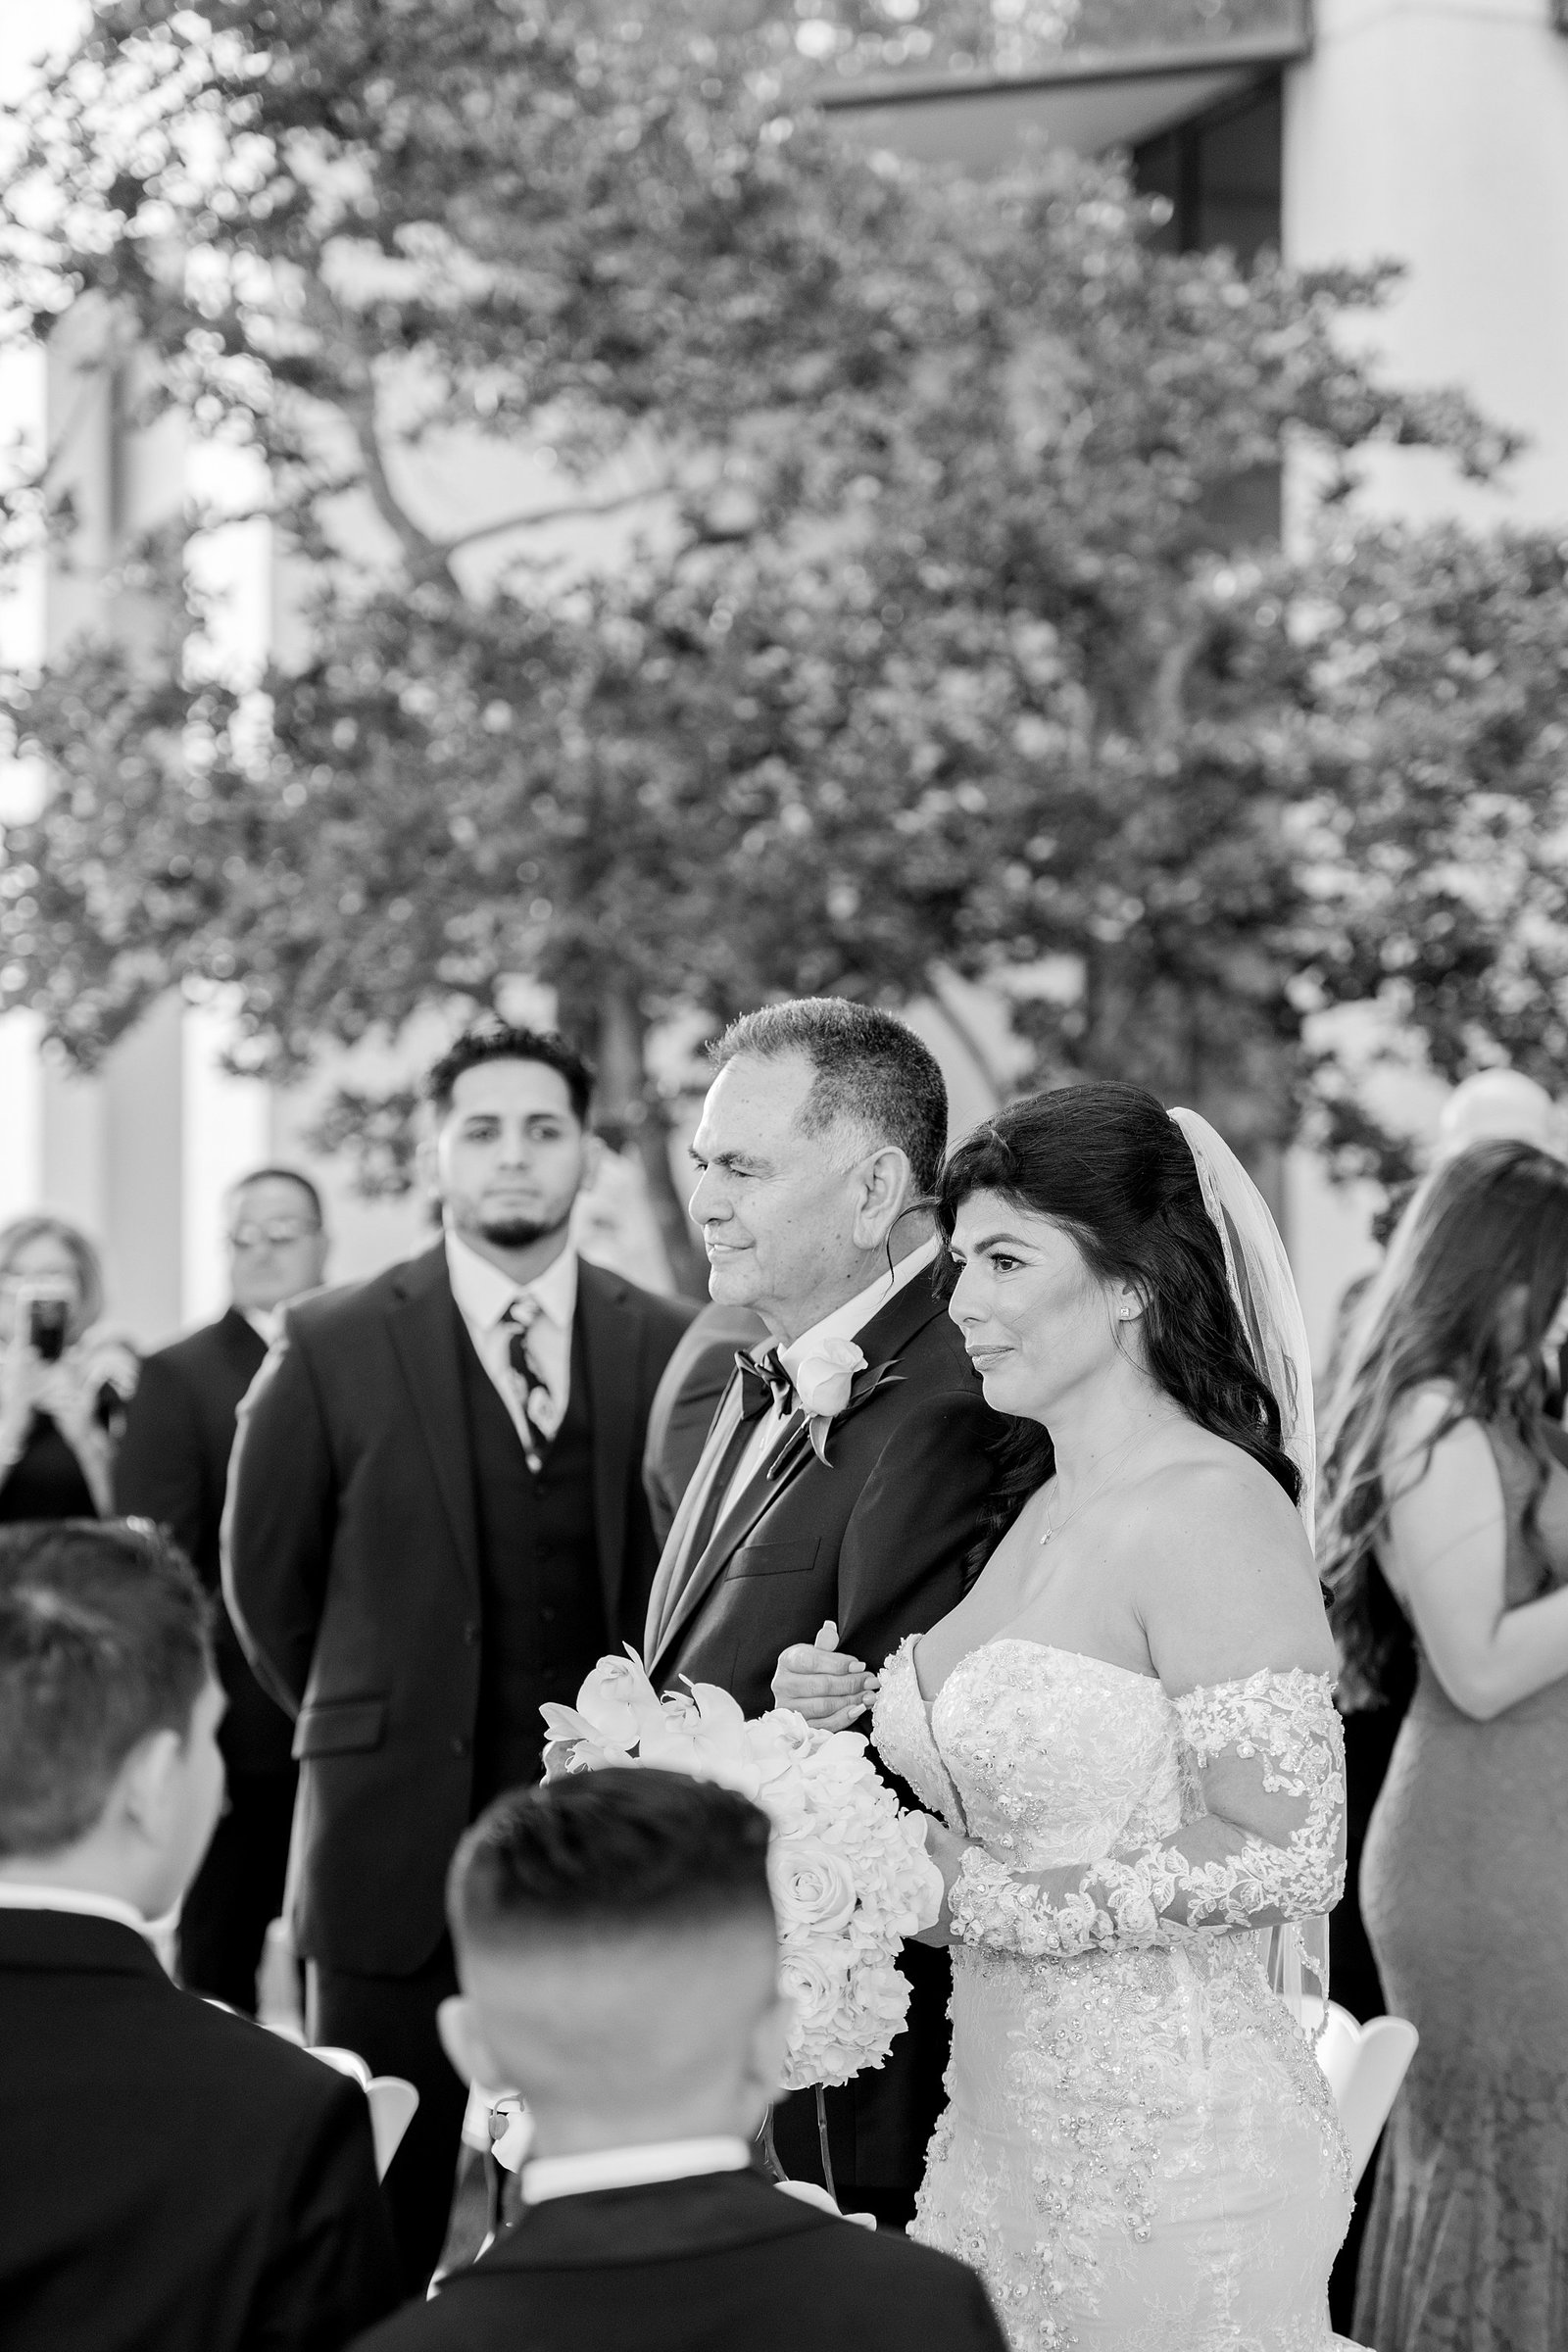 Bride walking down the aisle with dad | Orlando wedding photographer